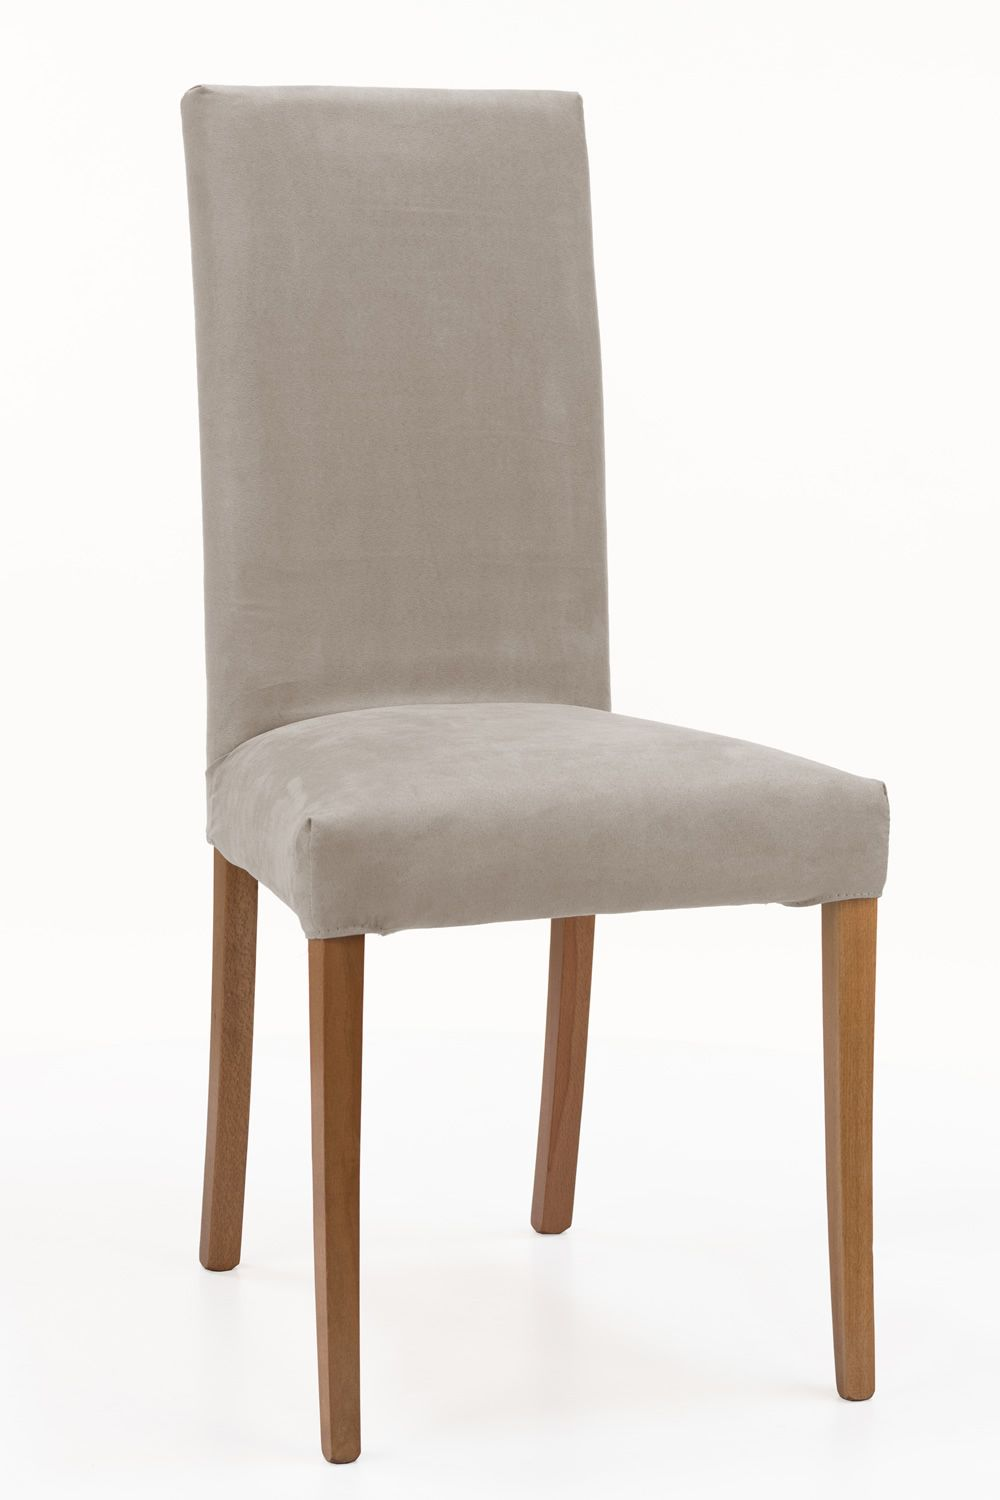 wooden chair padded seat and back removable cover mu72